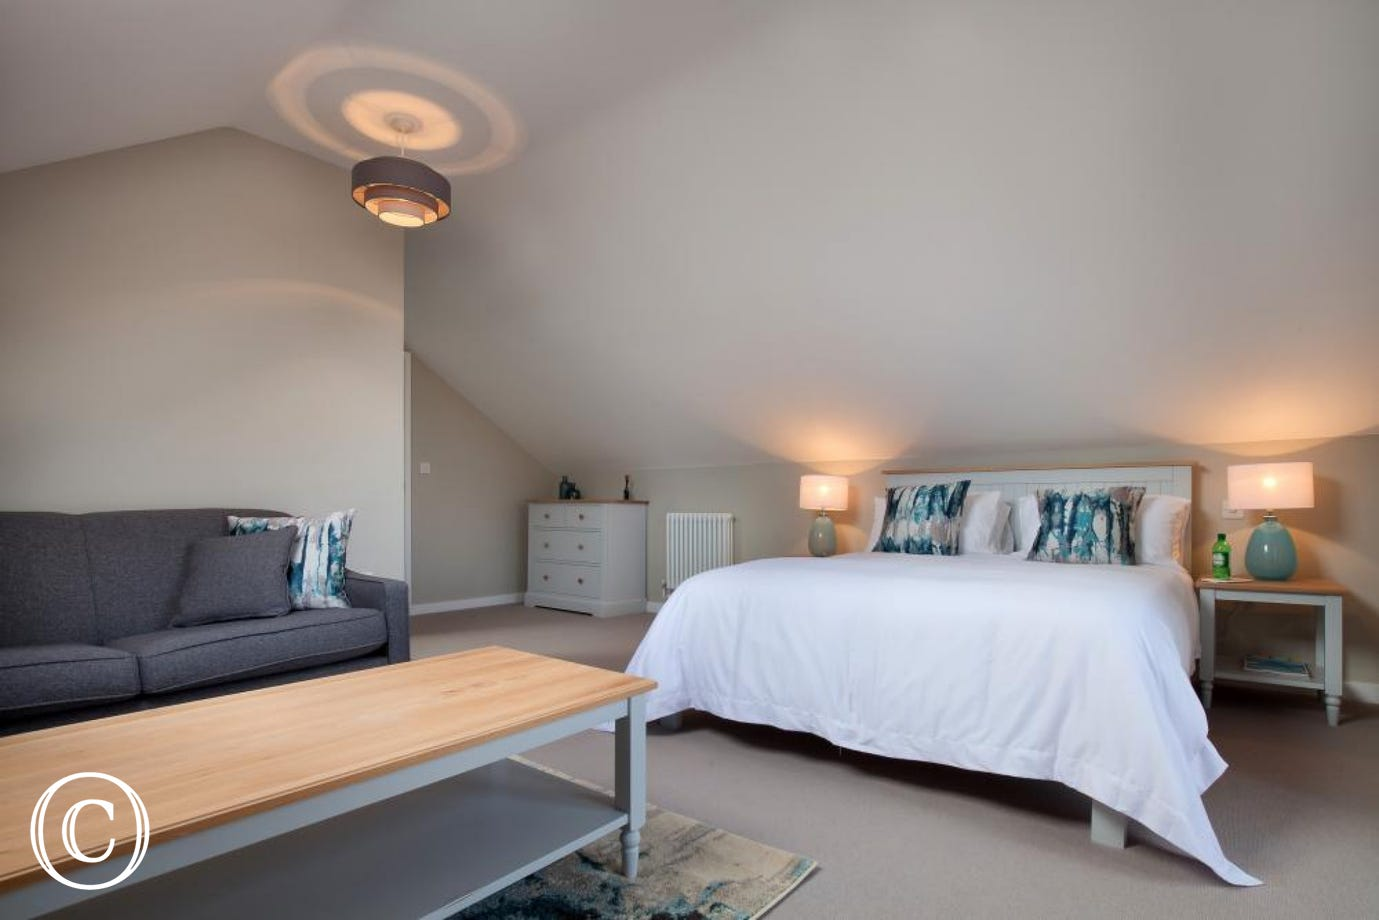 Upstairs master king-size bedroom with en-suite shower room, TV, sofa bed & glass doors opening out onto a sunny balcony